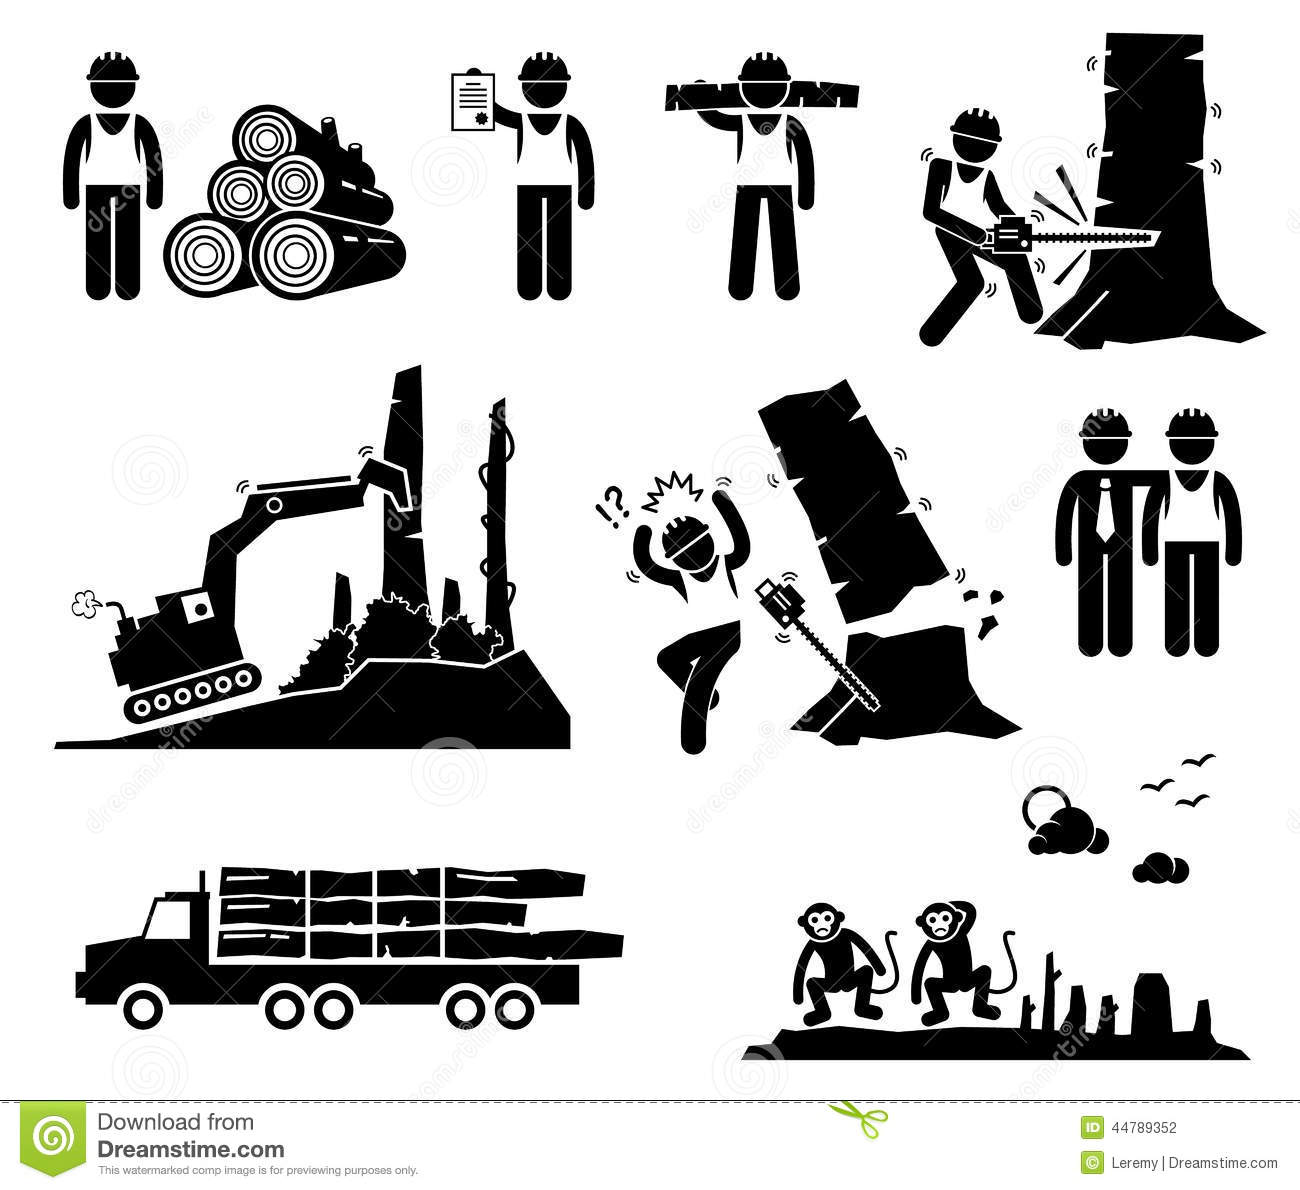 110391 Will Twilight Ever Be e A Ruler moreover Stock Illustration Timber Logging Worker Deforestation Cliparts Icons Set Human Pictogram Representing Human Process Destroy Natural Image44789352 furthermore SrvyPS moreover 30919 in addition Urban Sprawl Works. on land construction